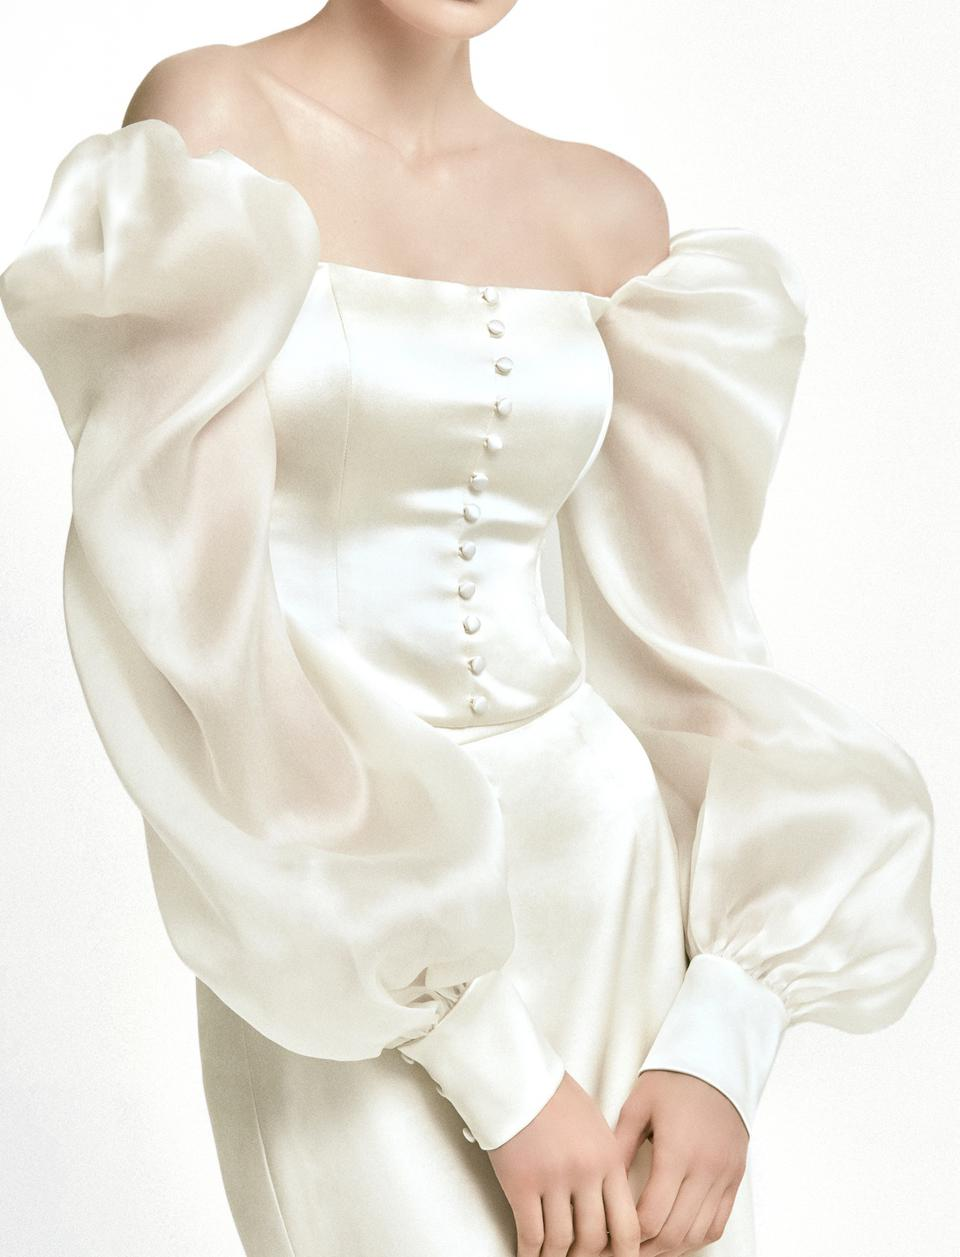 Ivan Young Silk Gazer Puffy Sleeves Satin Top is made with 100% silk and boasts a button appliqué along the front and zip closure in the back.